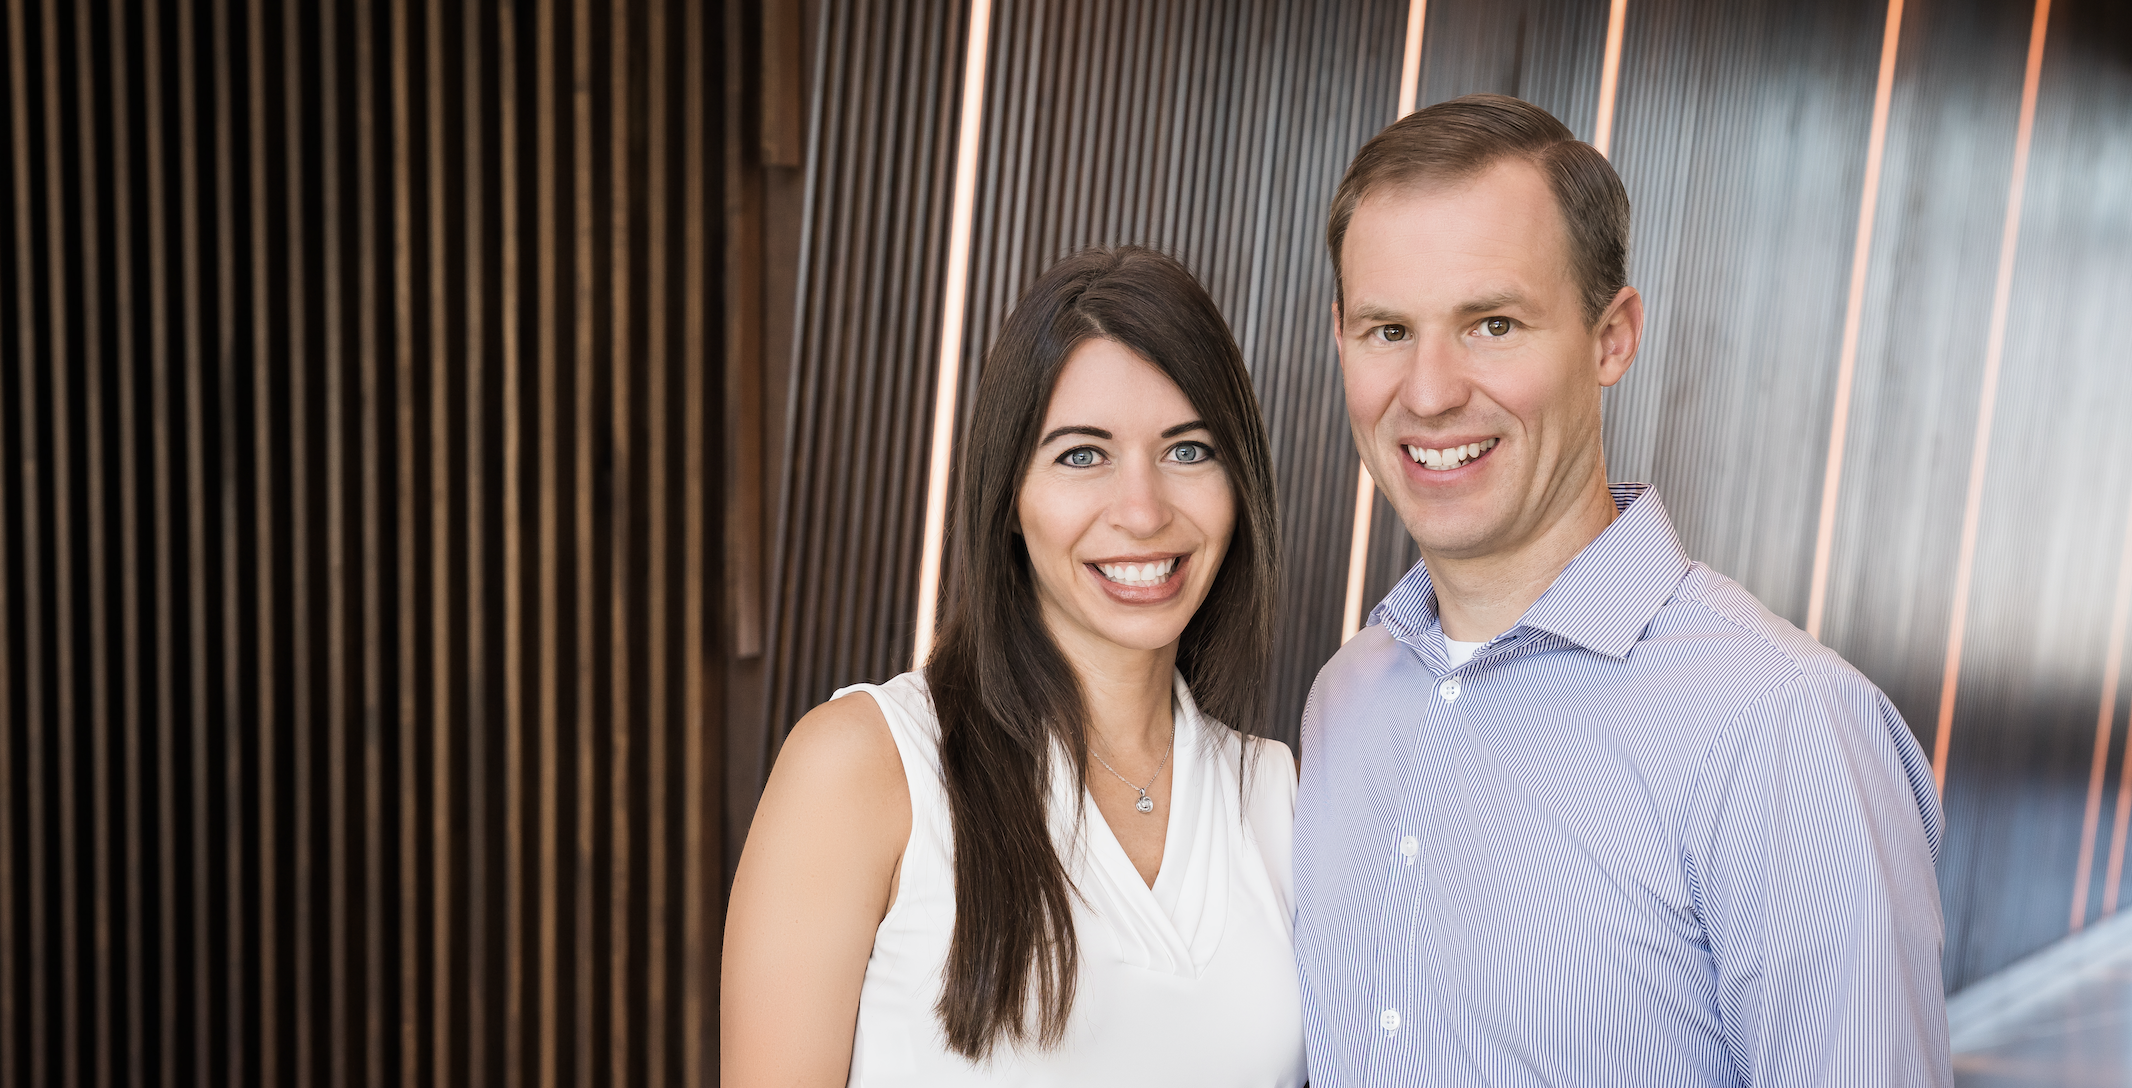 Pattern Co-Founders Melanie Alder and David Wright started Pattern in 2013.